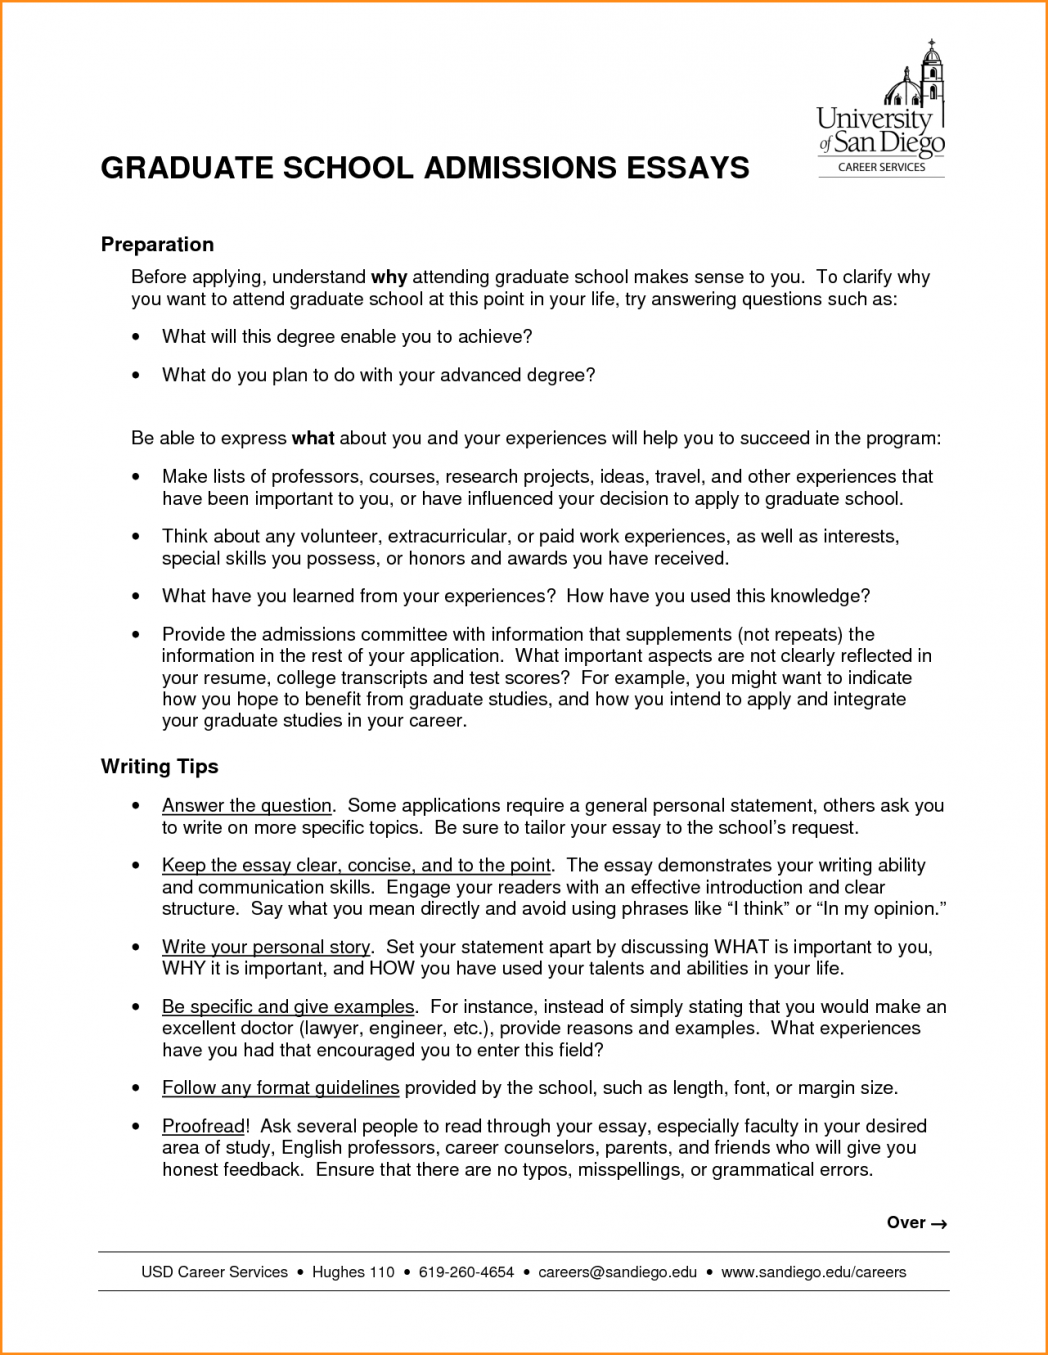 015 Sample High School Admission Essays Essay Example Admissions Catholic Samples Free Unusual Full